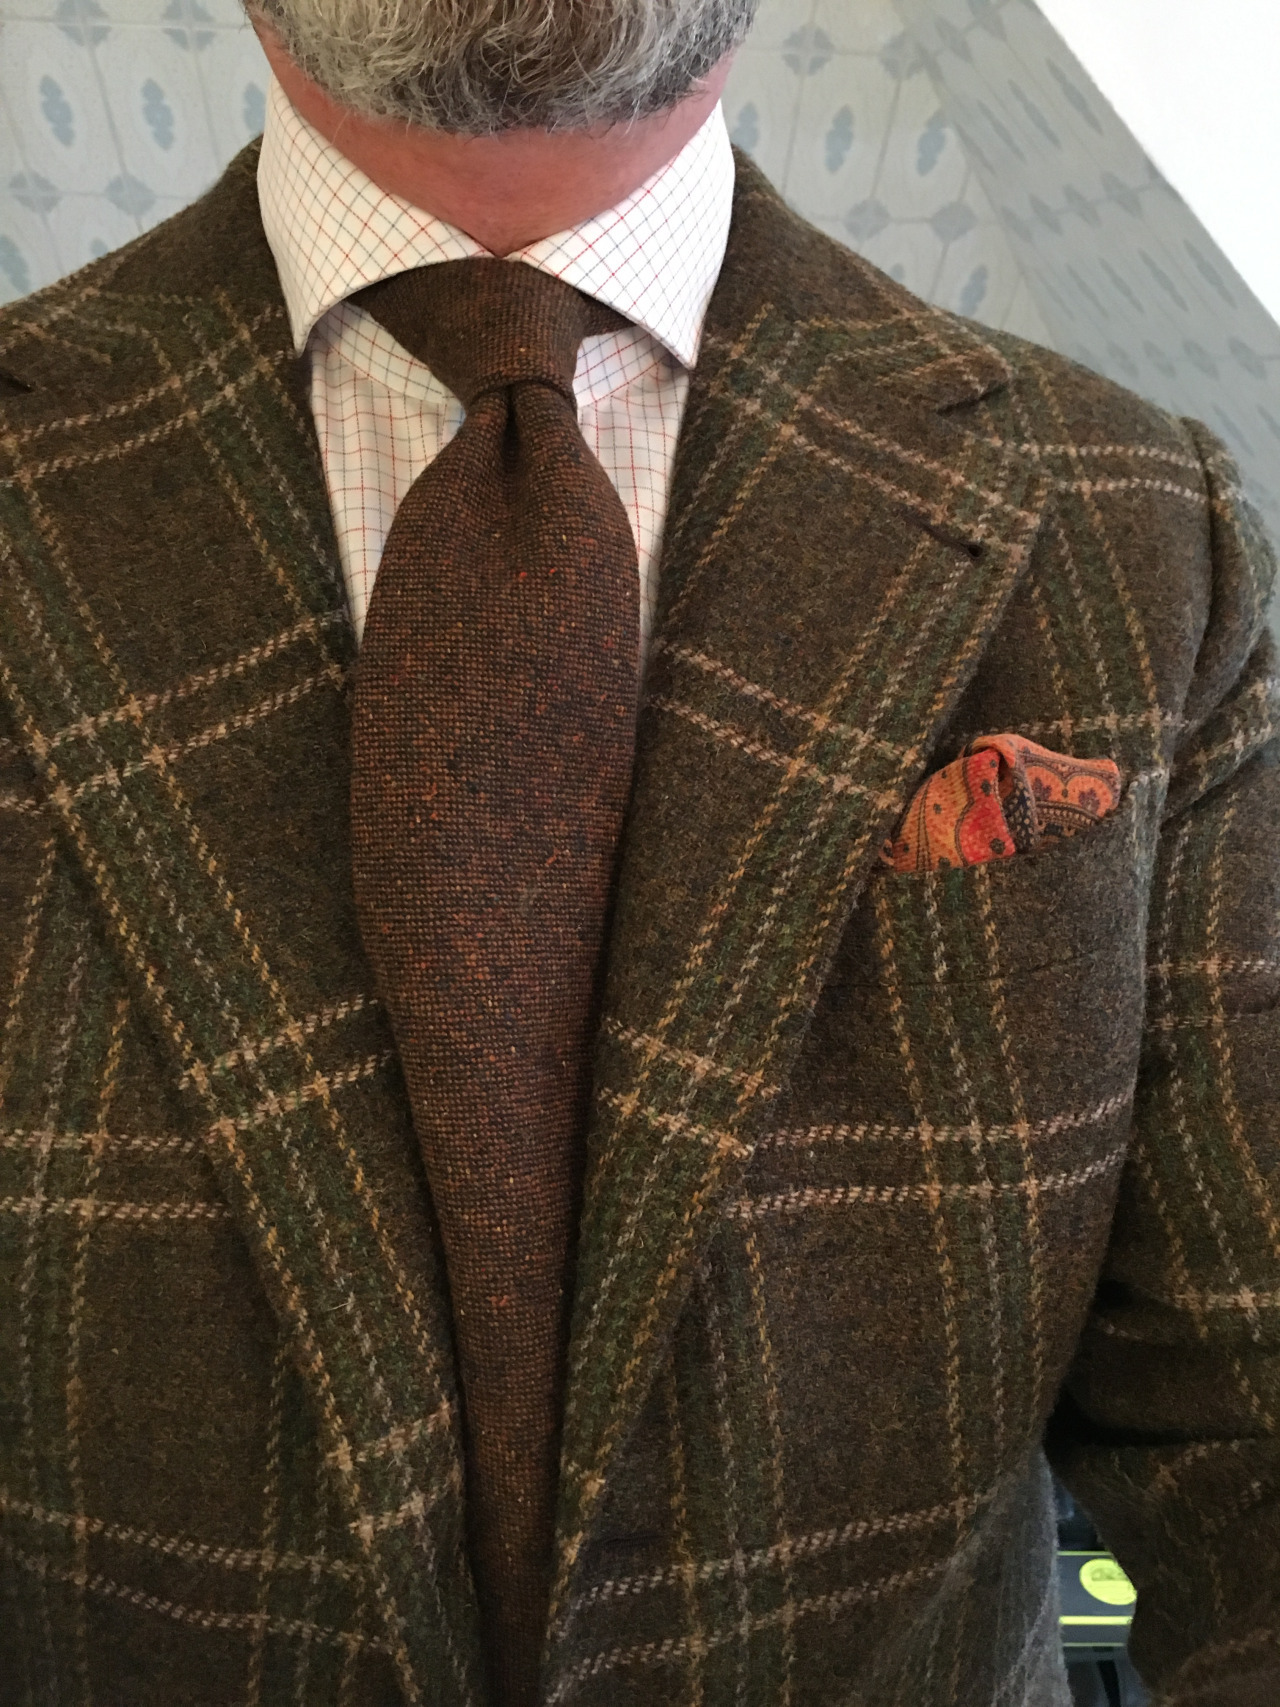 Real People: Cloth, Color, and Combinations